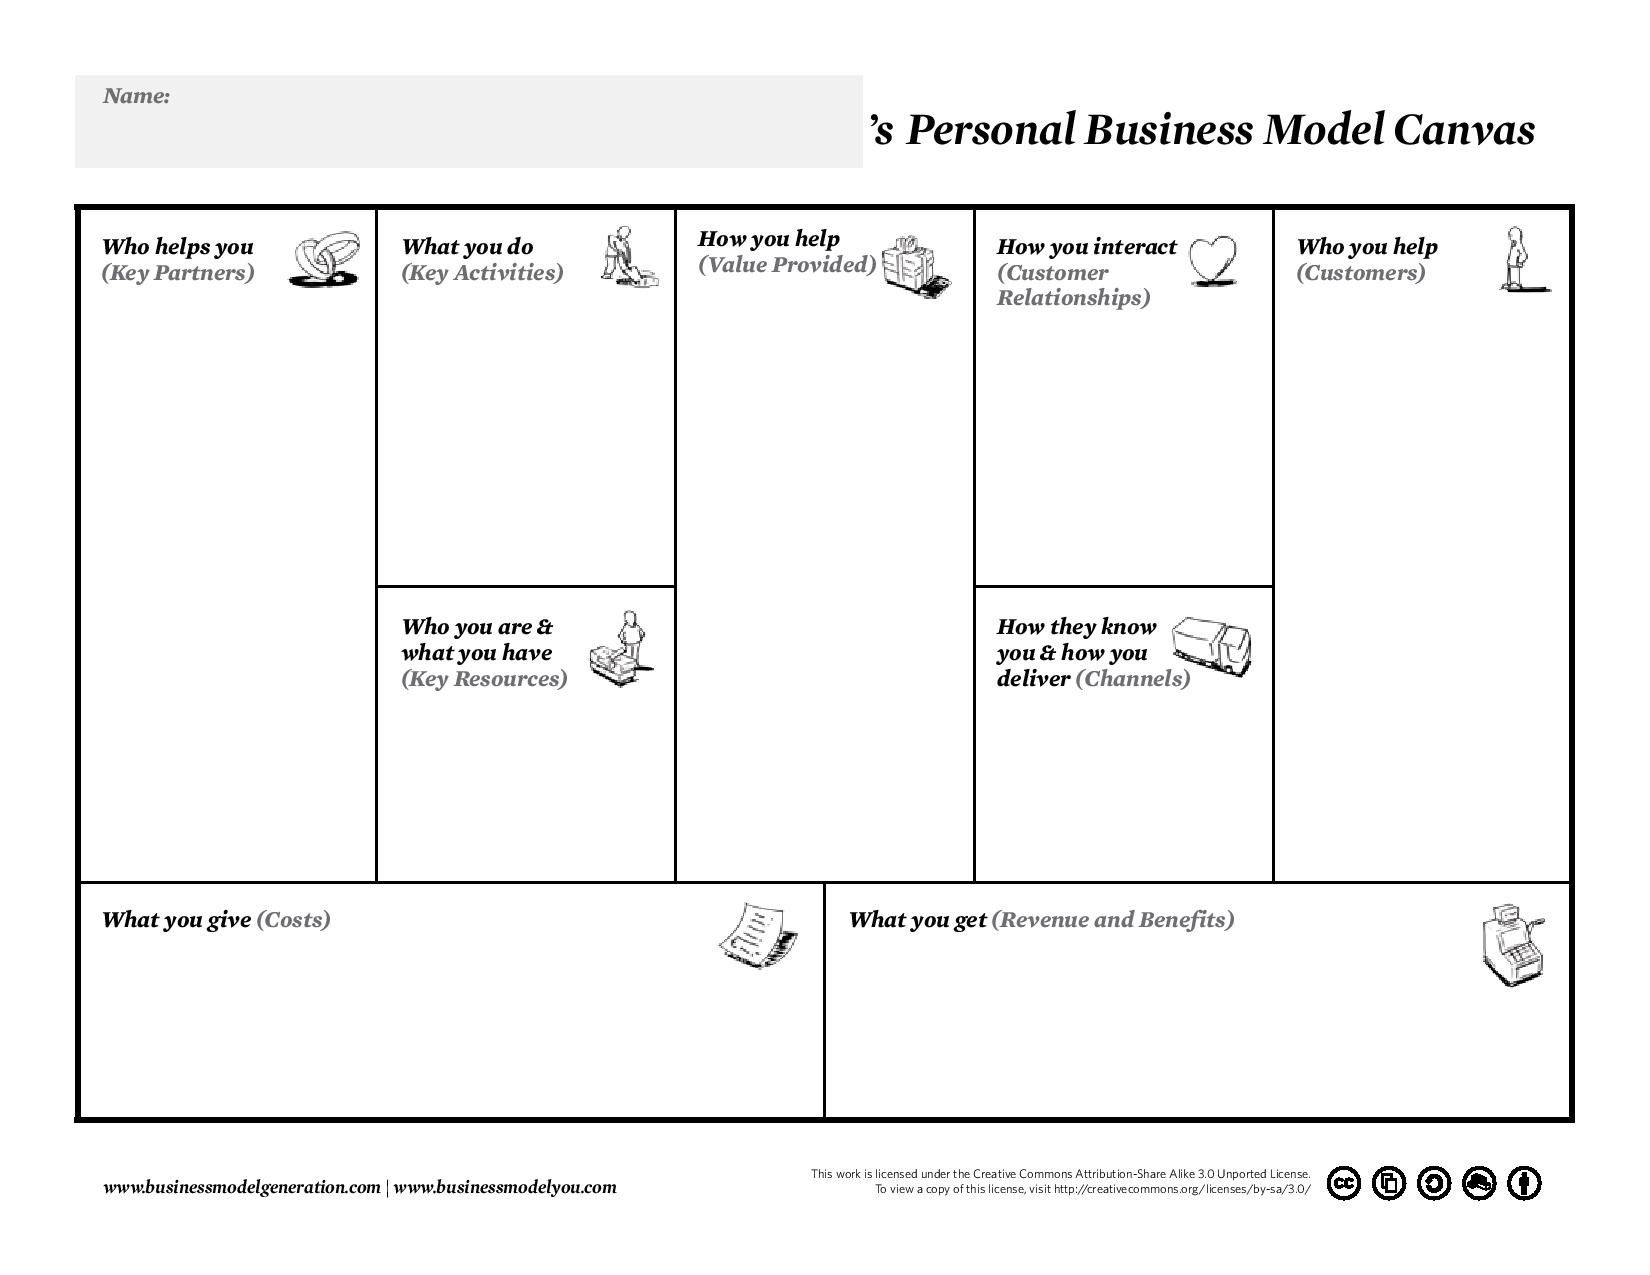 Editable Business Model Canvas Powerpoint Template Is A Profesional Presentation Representing The Bu In 2021 Business Model Canvas Business Model Template Model Canvas